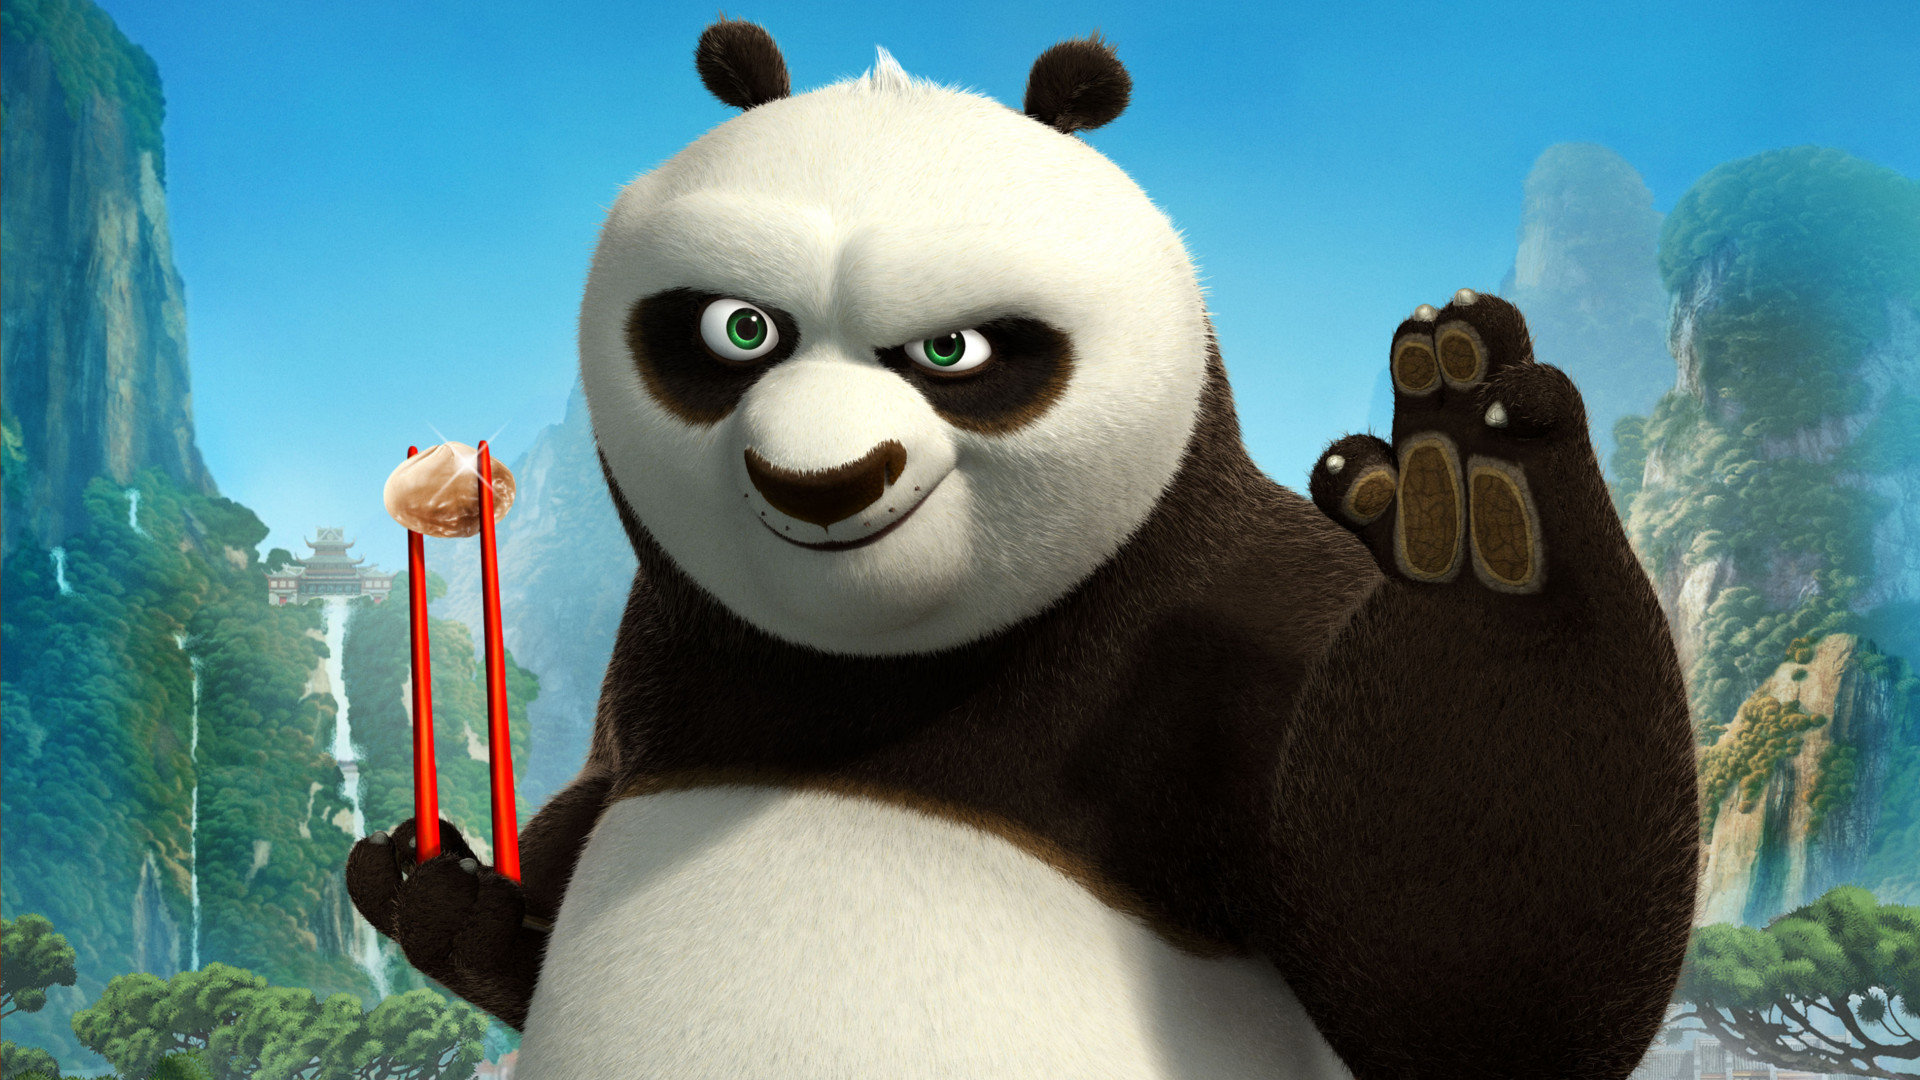 kung fu panda 2 wallpapers 1920x1080 full hd (1080p) desktop backgrounds